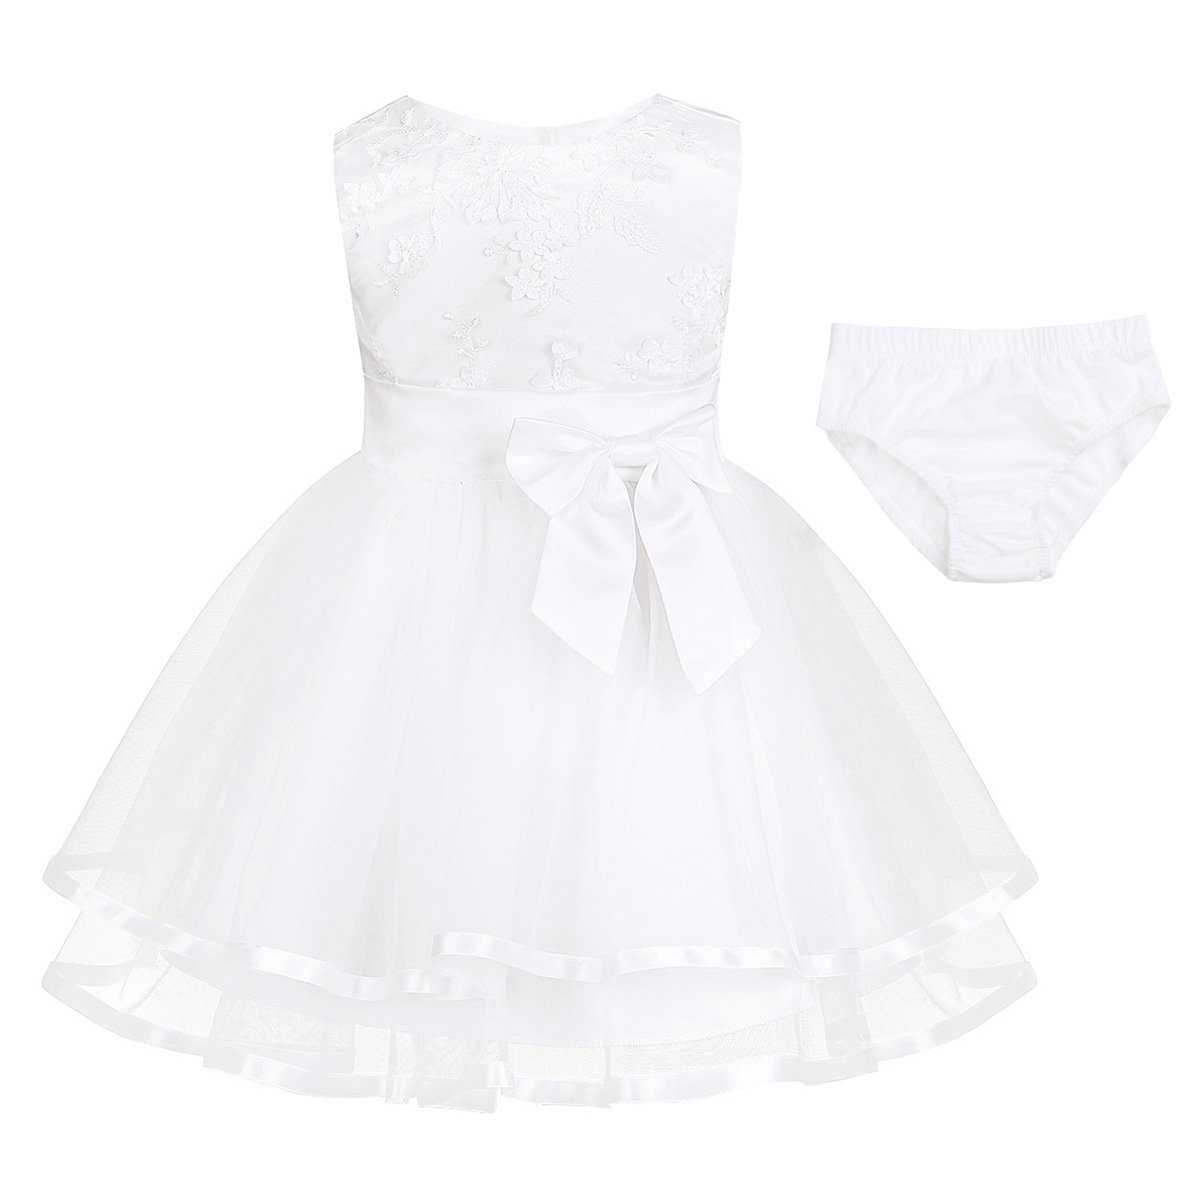 iEFiEL Baby Girls Sleeveless Embroidered 3D Flower Dress Wedding Birthday Party Pageant Christening Bloomers